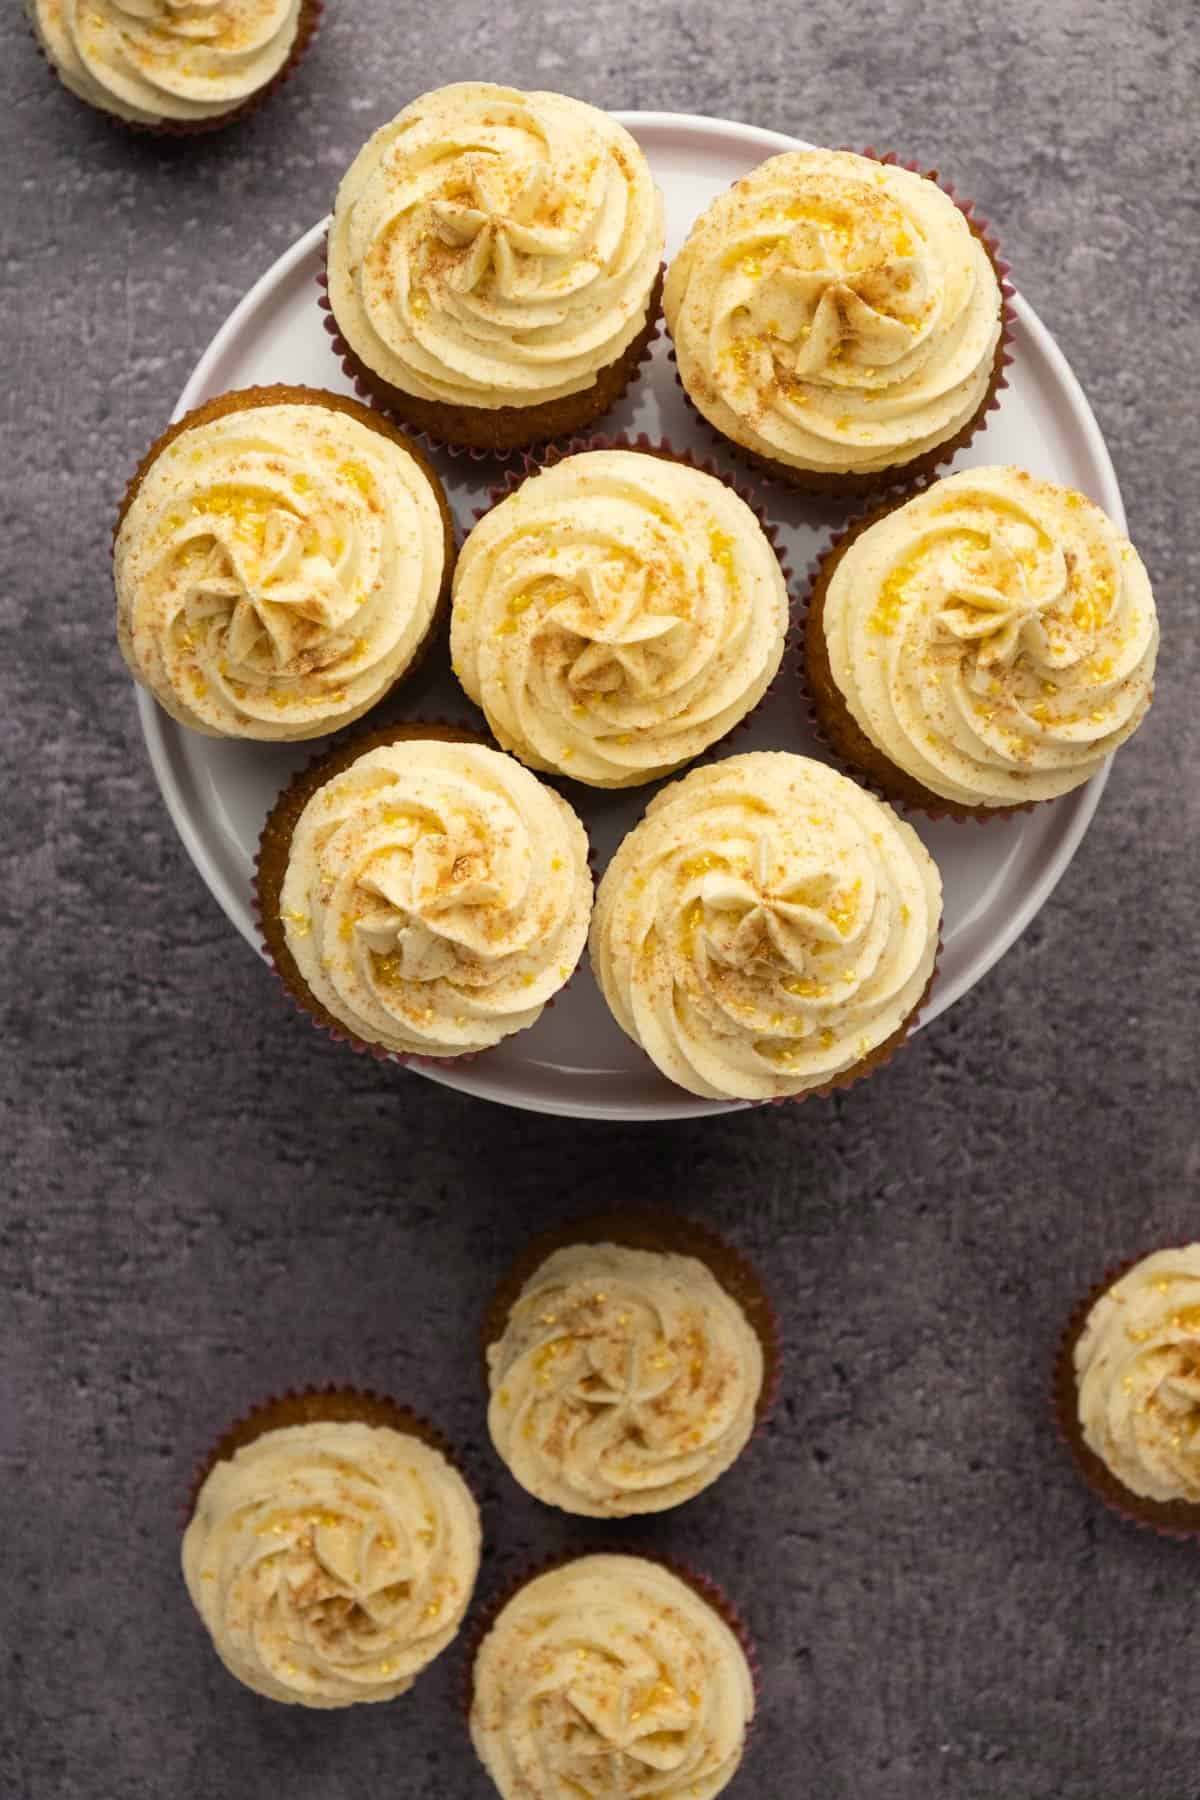 Cupcakes topped with vanilla frosting and gold decoration on a white cake stand.